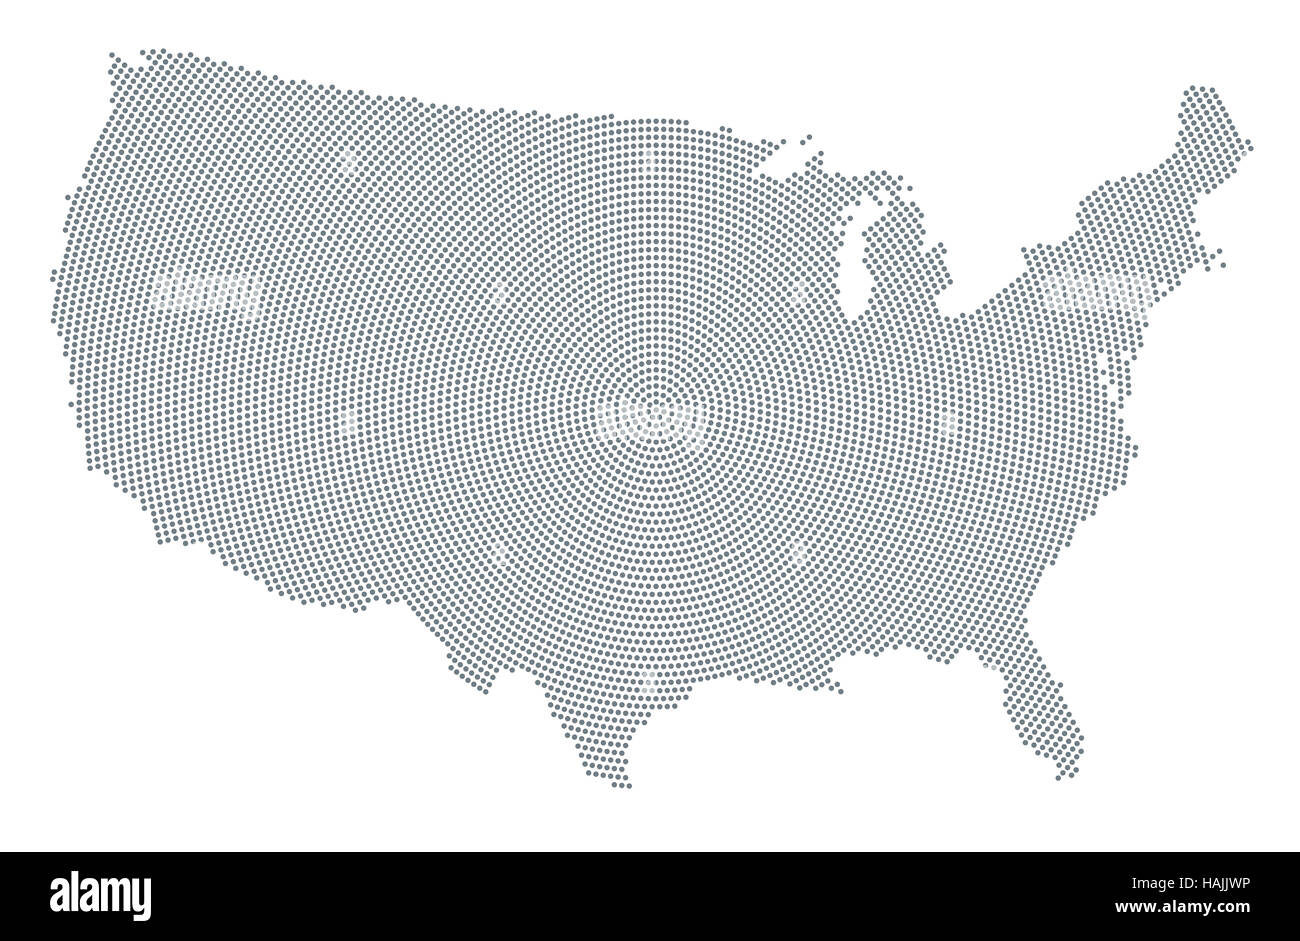 United States Of America Map Radial Dot Pattern Gray Dots Going - Cool us map with dots